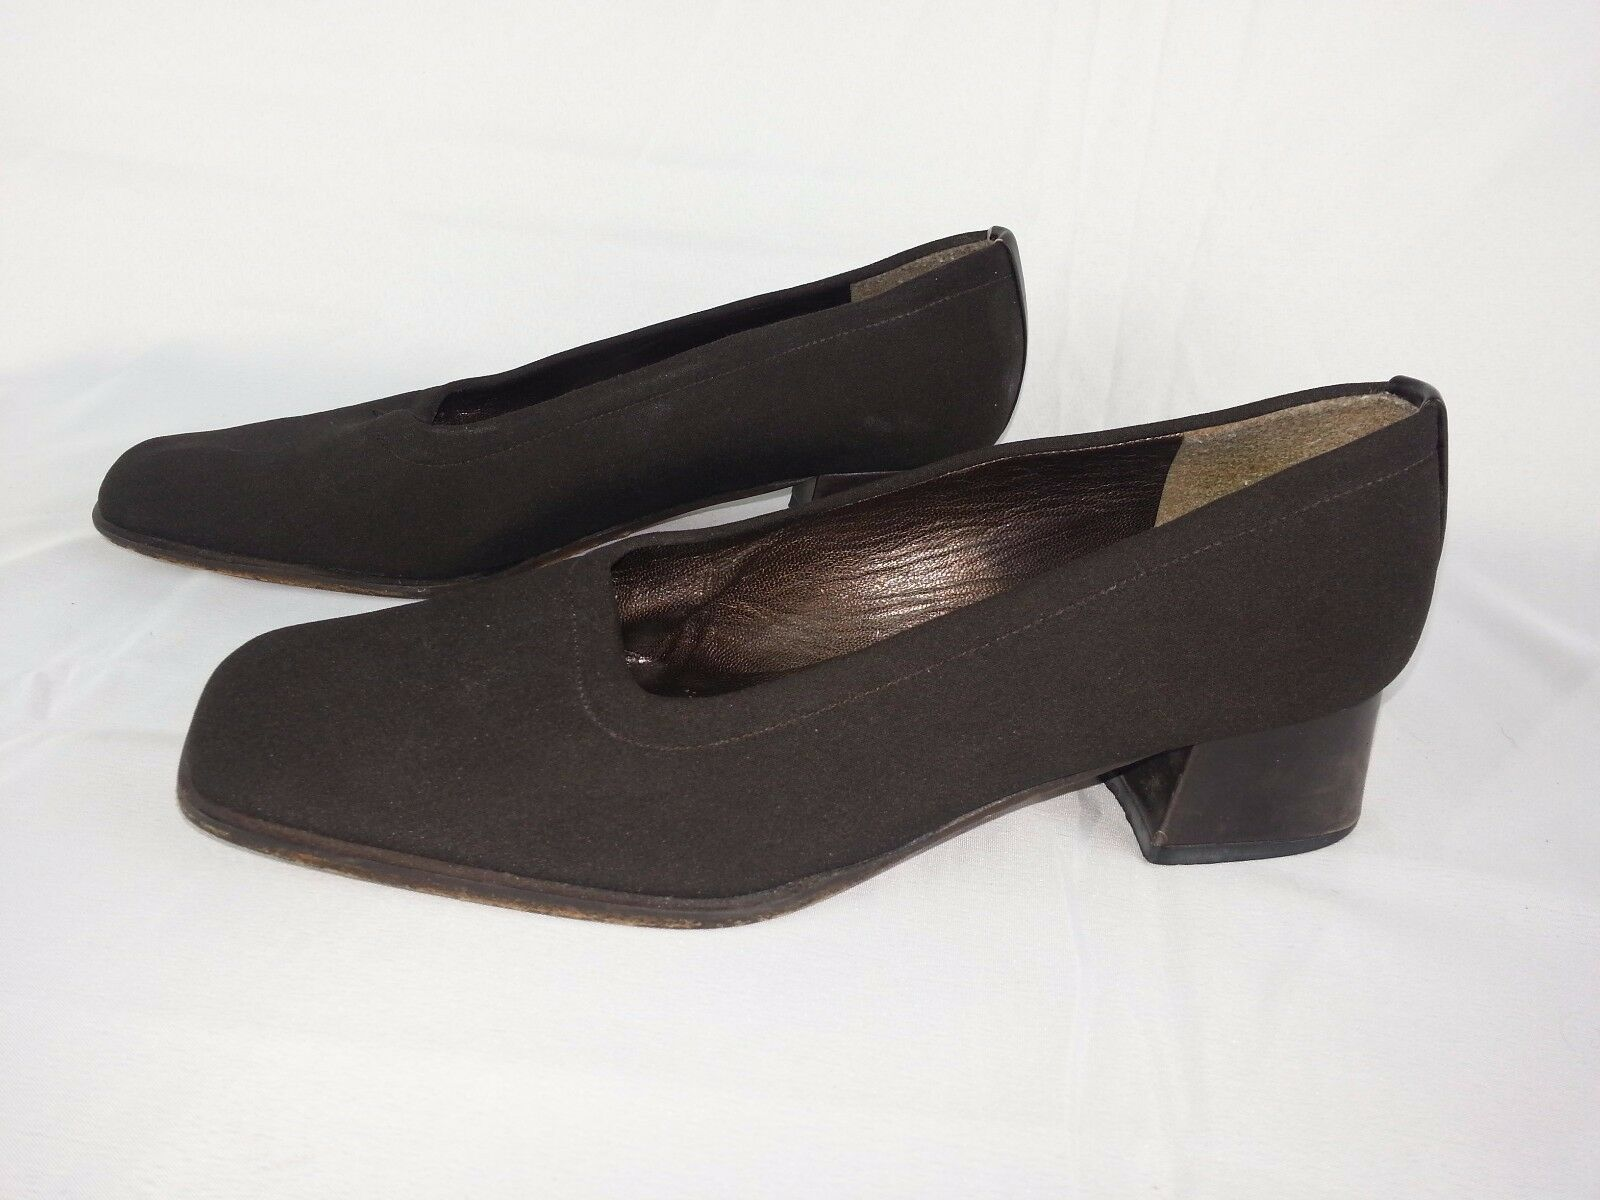 Stuart Weitzman Women`s Brown Fabric Slip On Wedge Loafers shoes Size 6.5 M